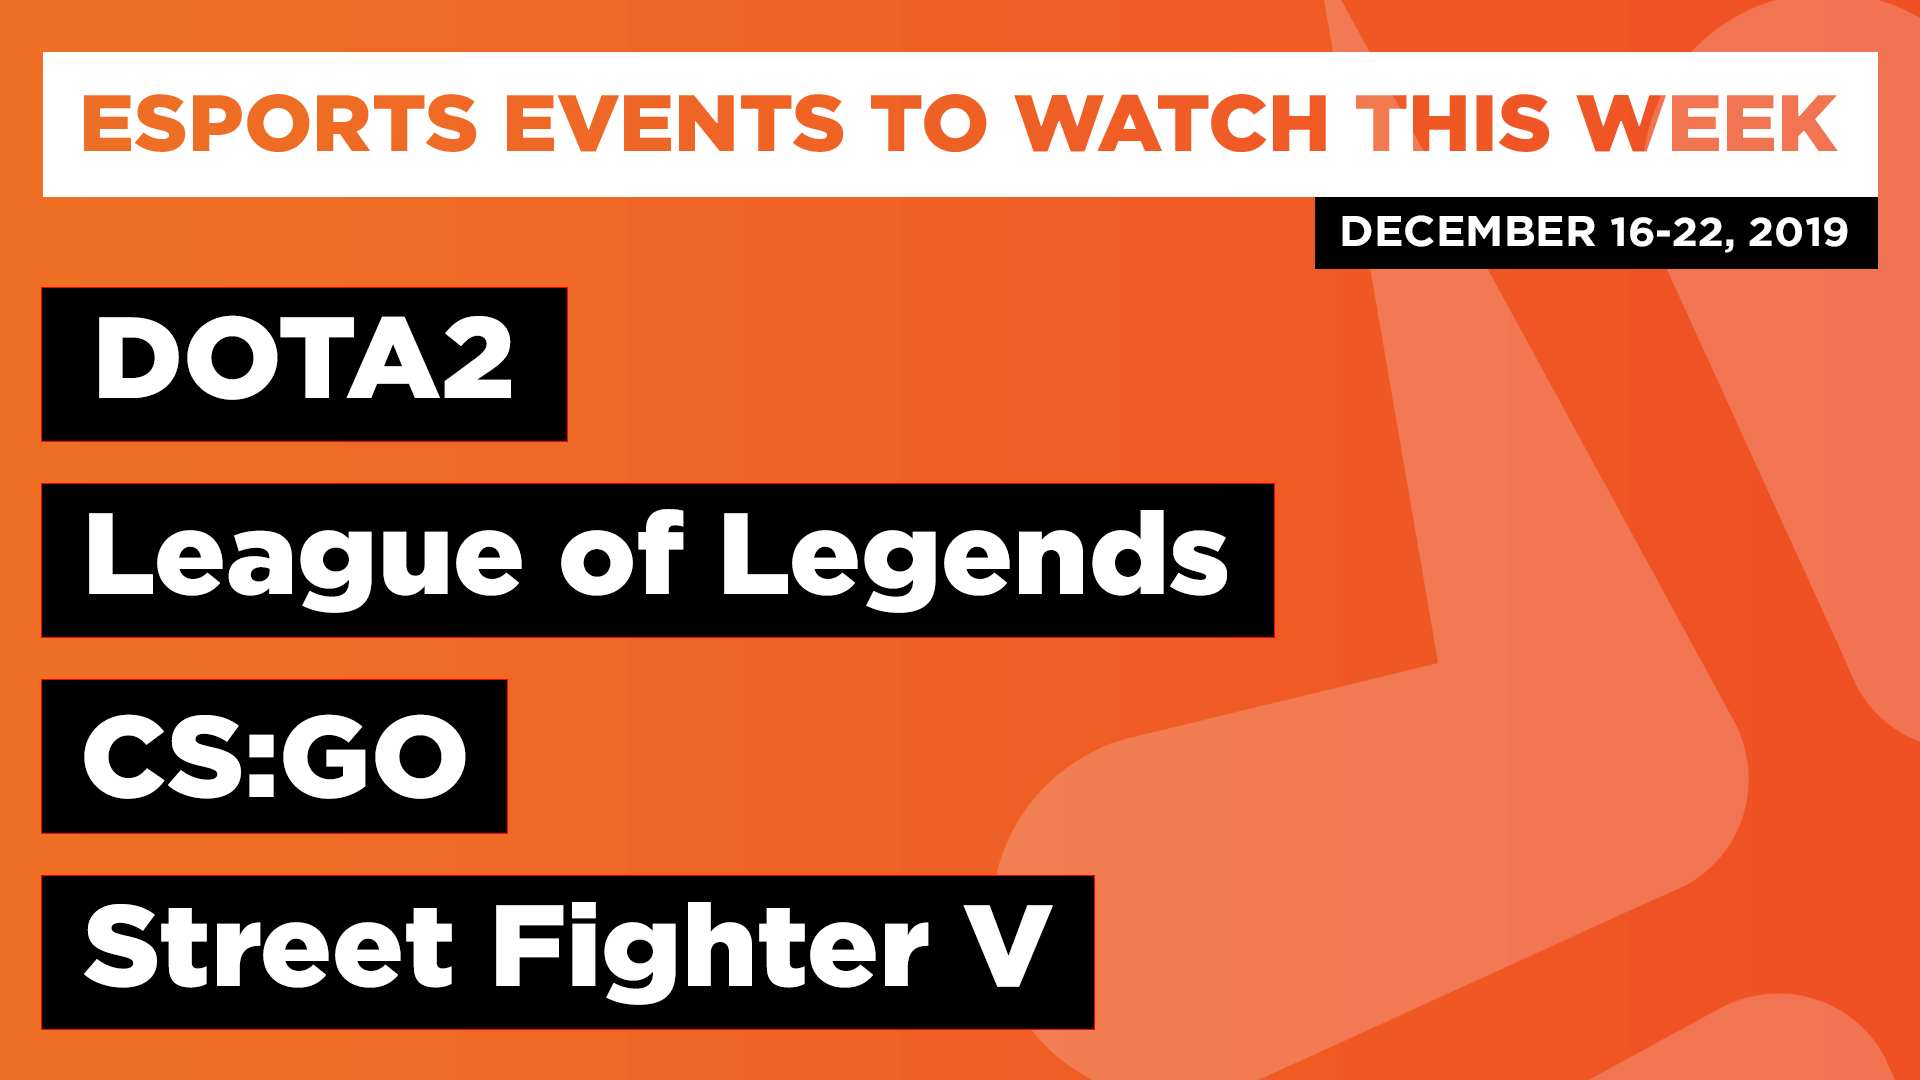 Esports Events to Watch This Week (Dec 16-22, 2019)